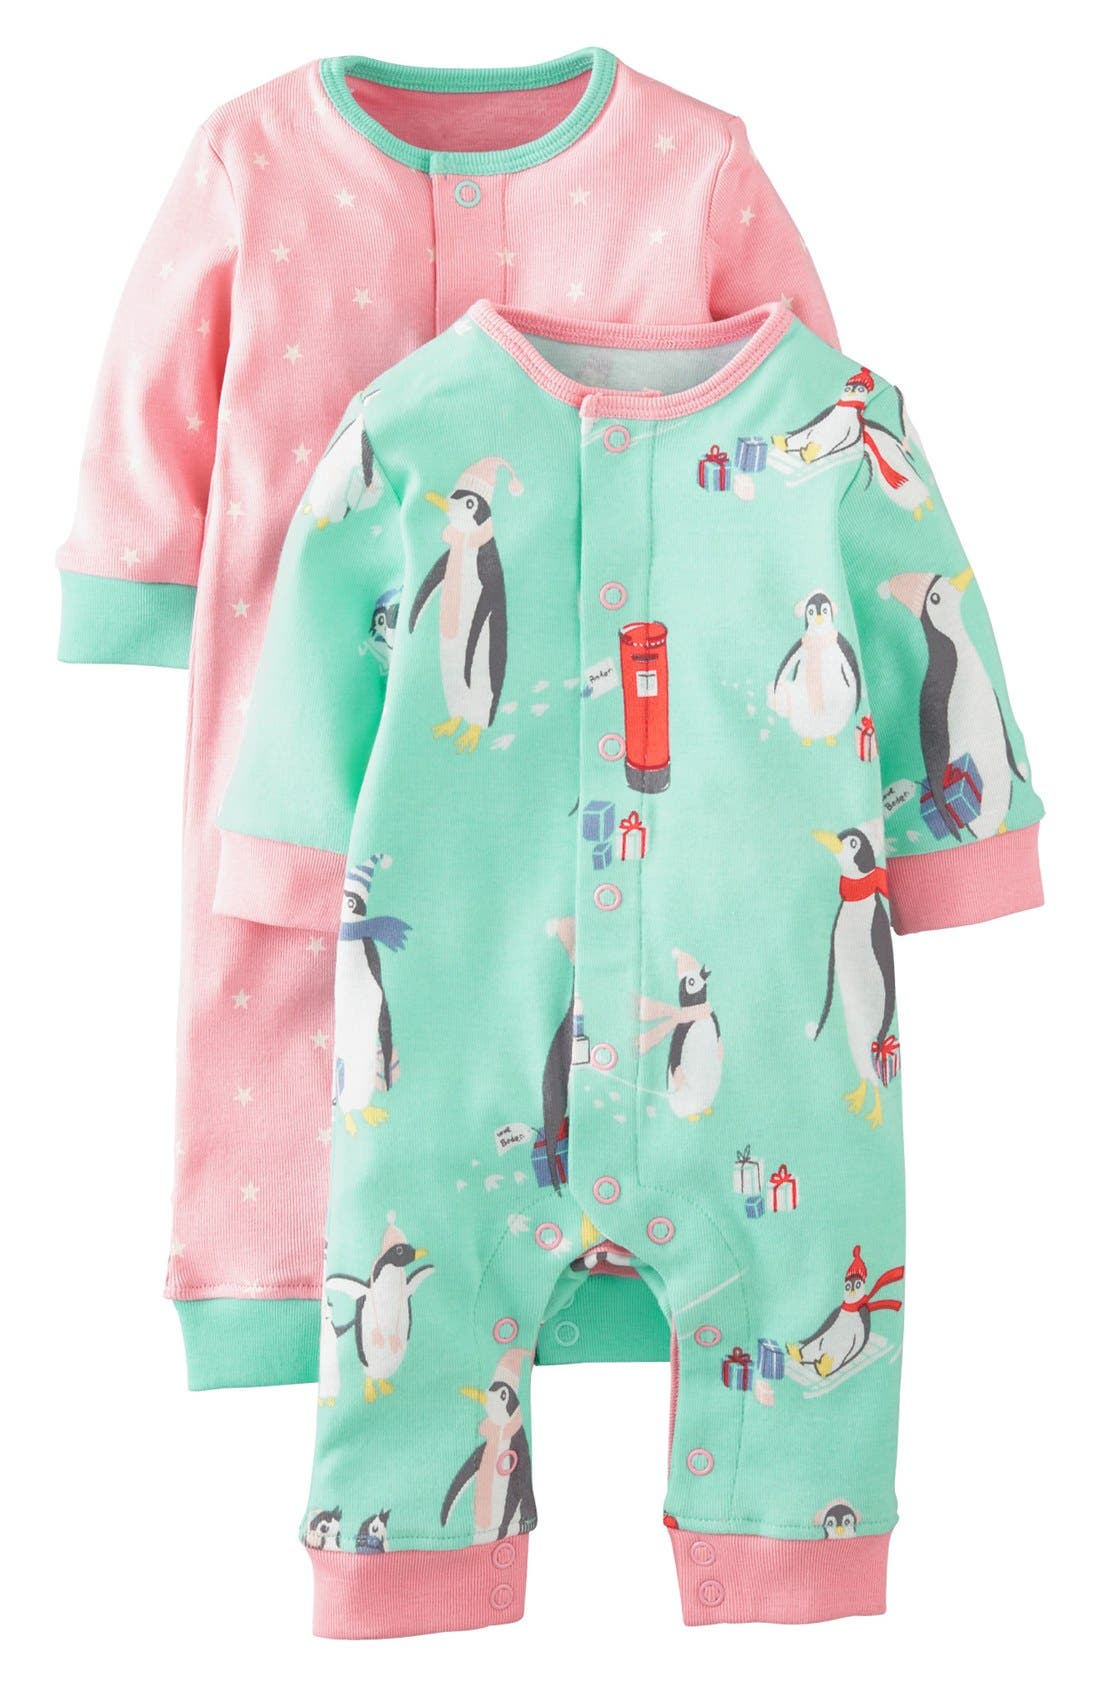 Main Image - Mini Boden Print Romper (2-Pack) (Baby Girls)